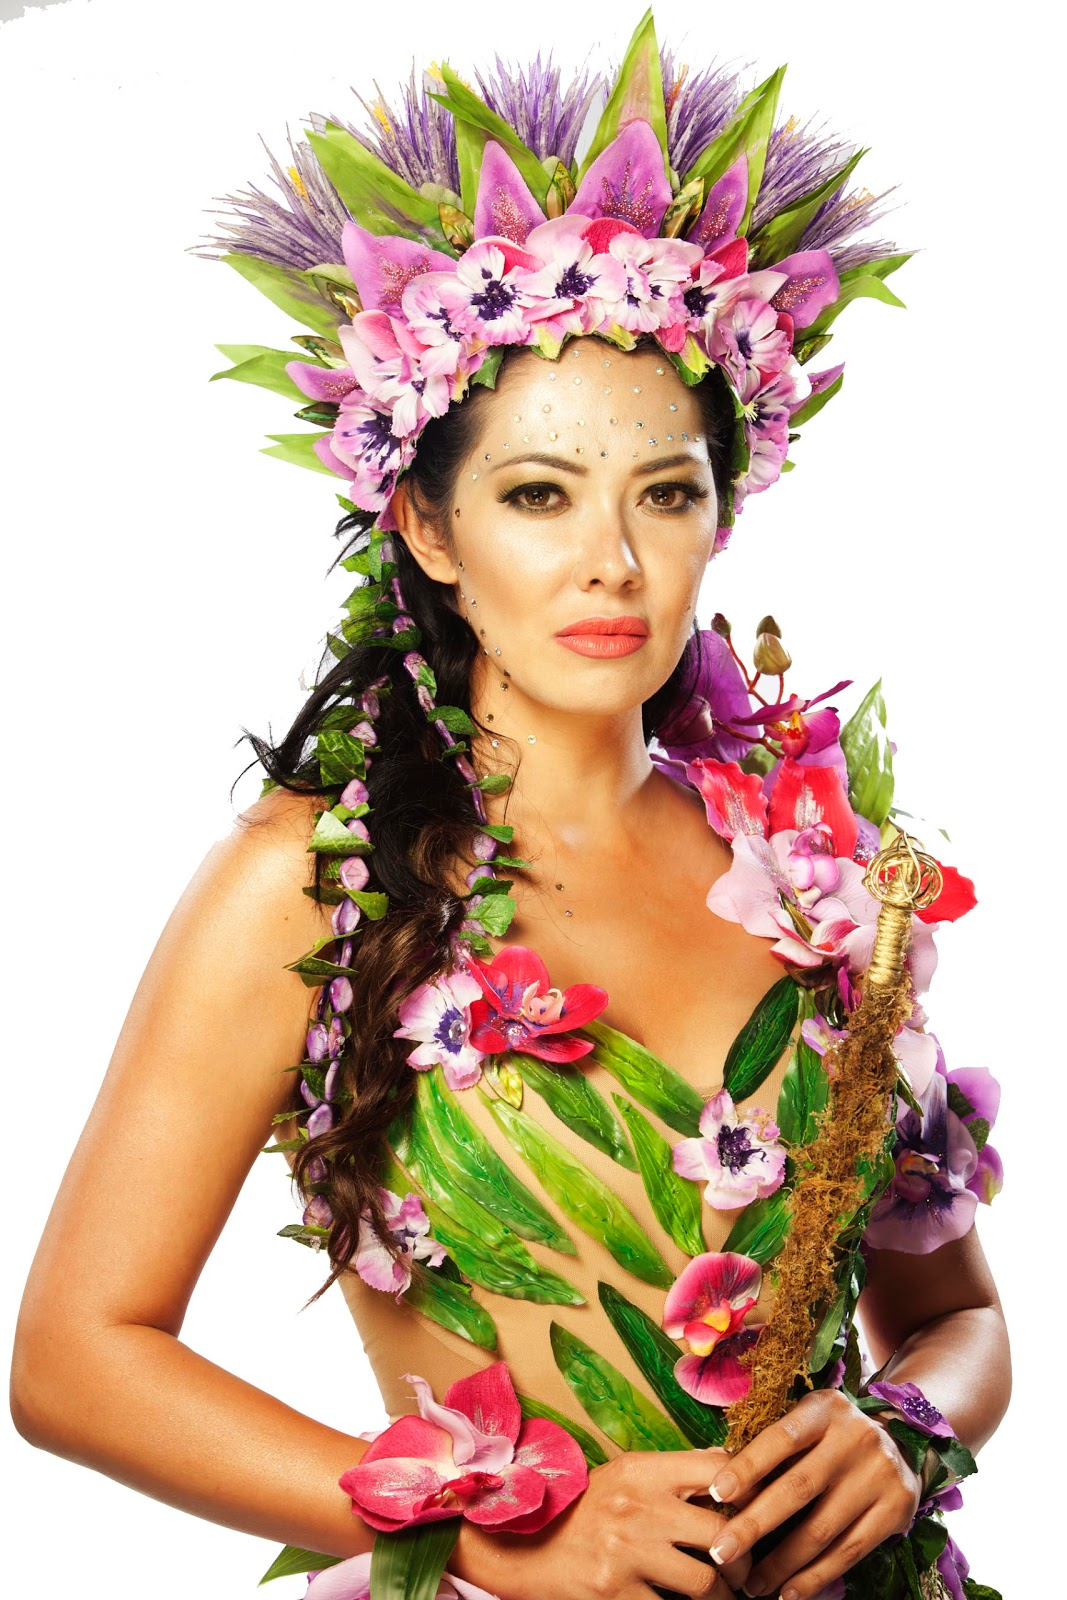 Ruffa Gutierrez Is With Tv5 S Enchanted Garden But Does Filmfest Movie With Gma 7 Showbiz Portal